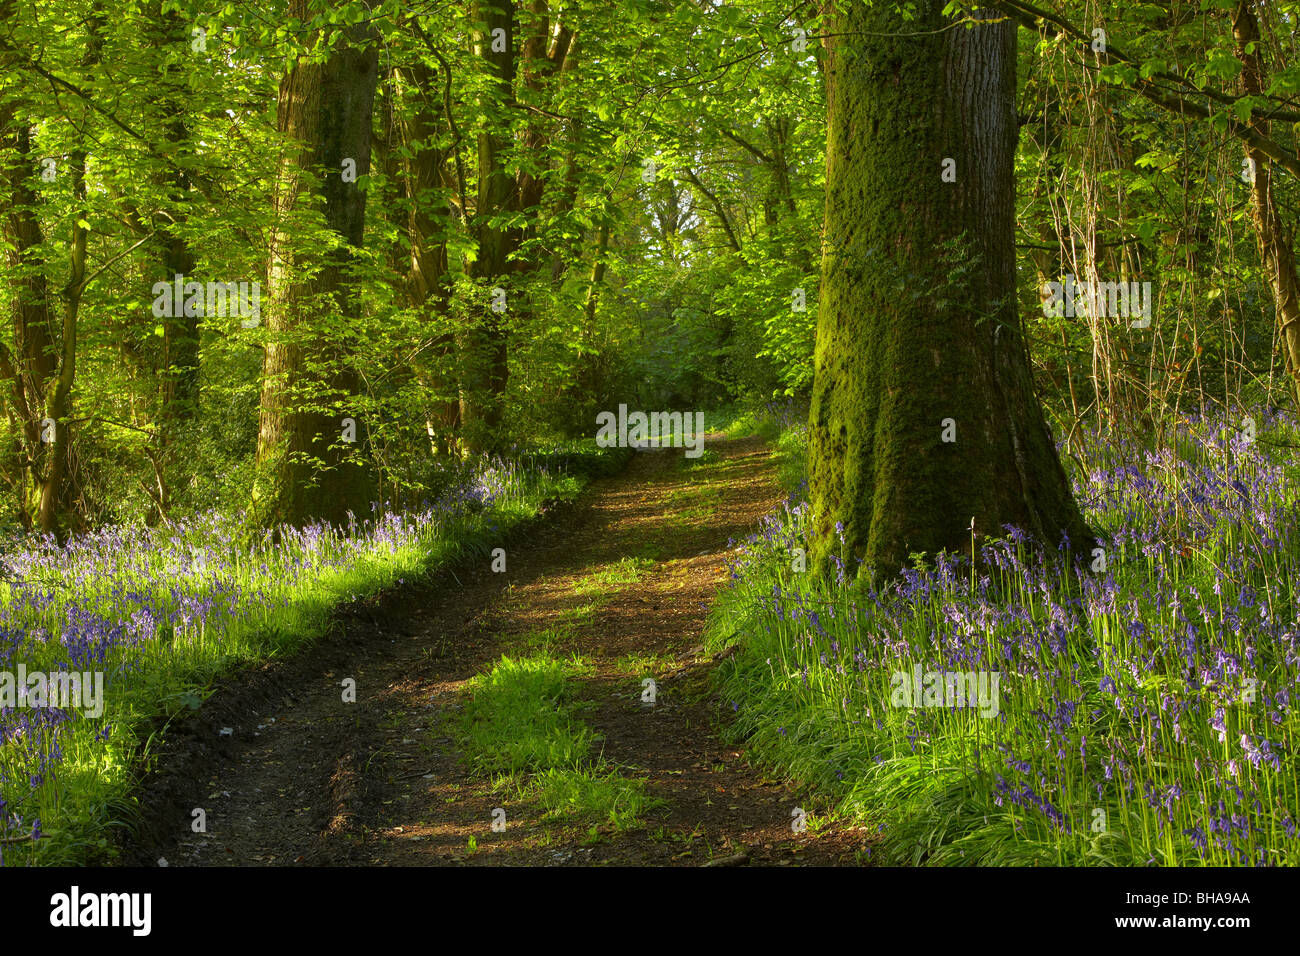 a track through the bluebells in the woods at Batcombe at dawn, Dorset, England, UK - Stock Image